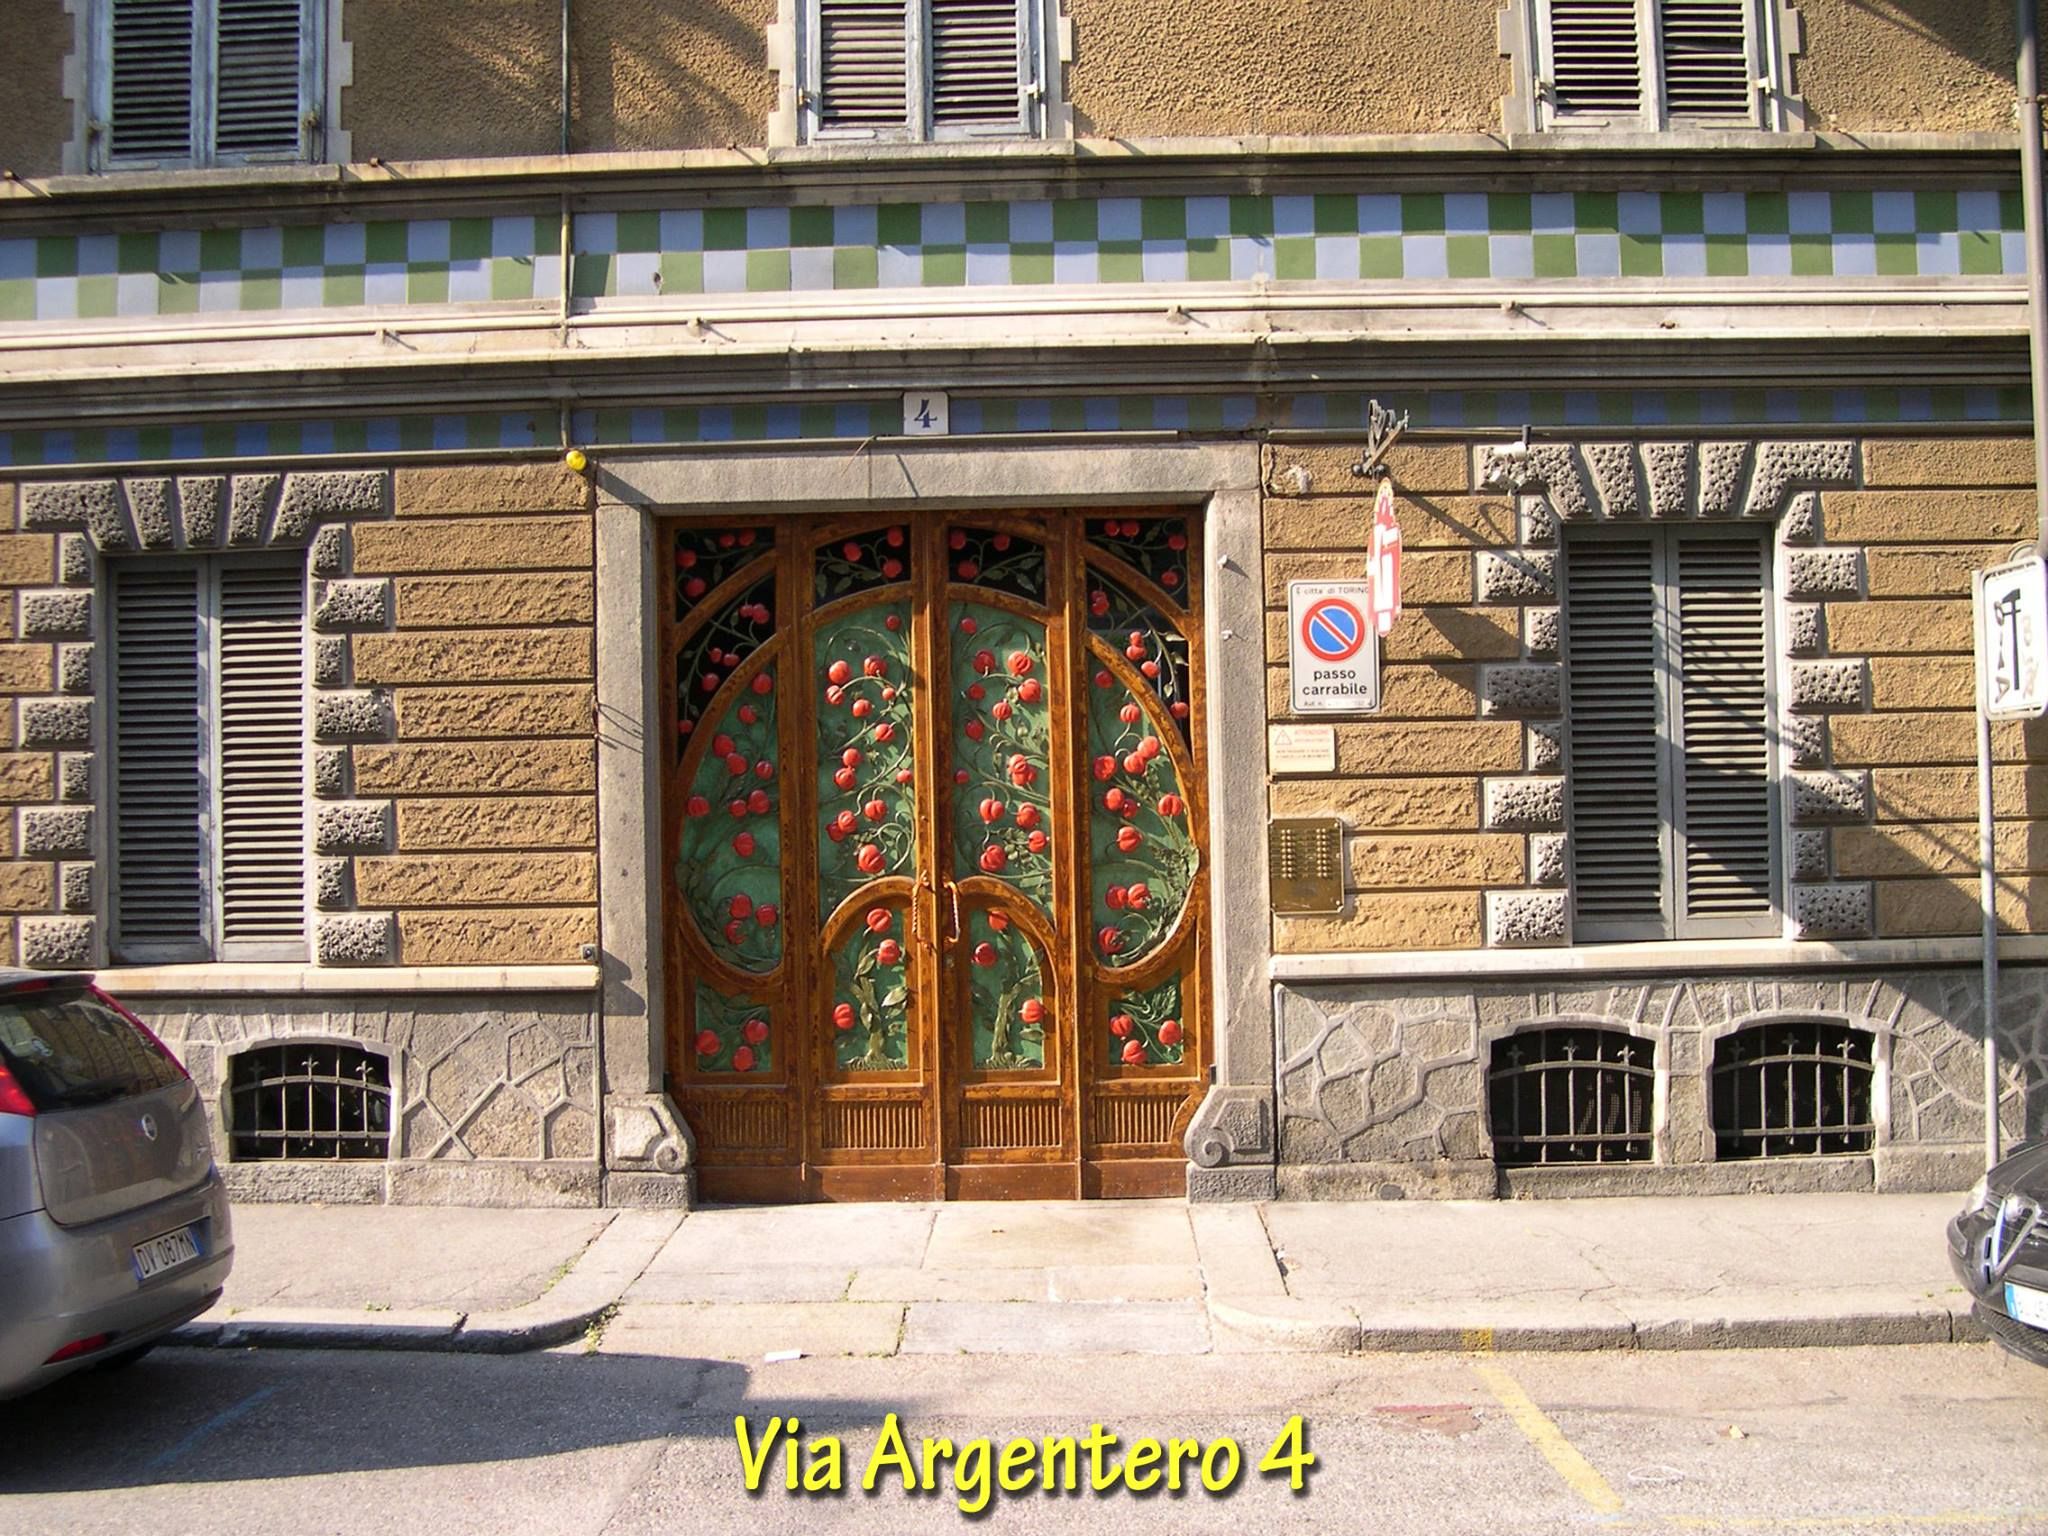 "Photo of 1994 San Salvario: riti ""voodoo"" in via Argentero?"